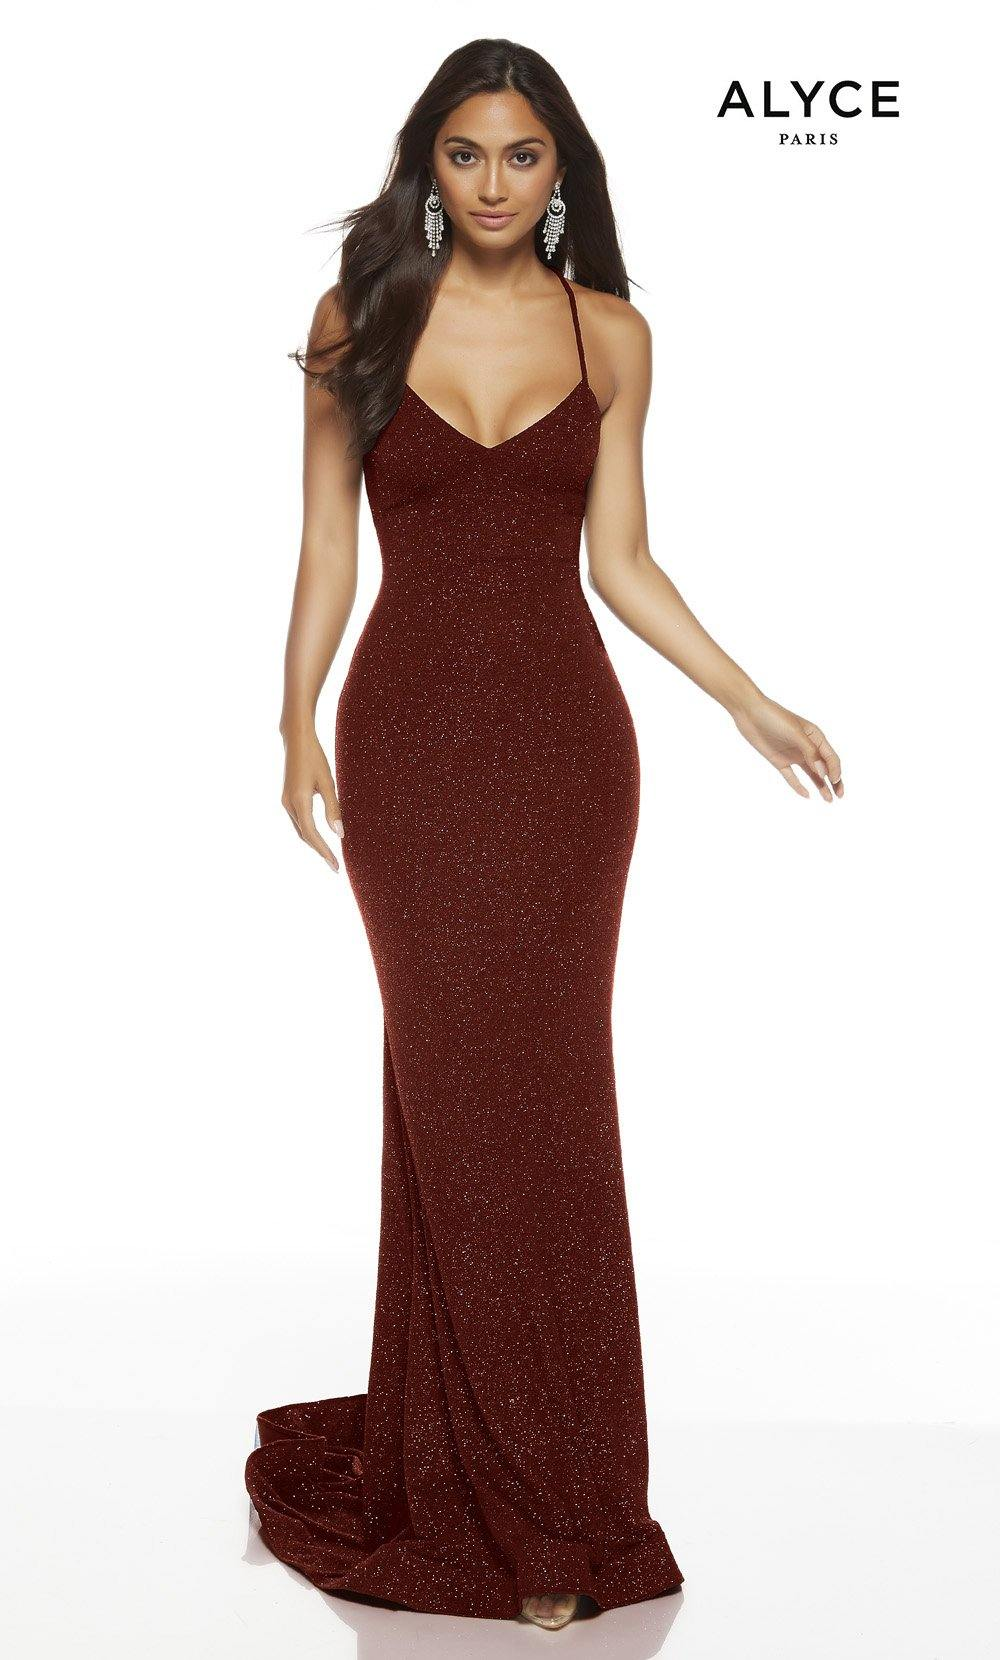 Wine bodycon red-carpet dress with a V-neckline